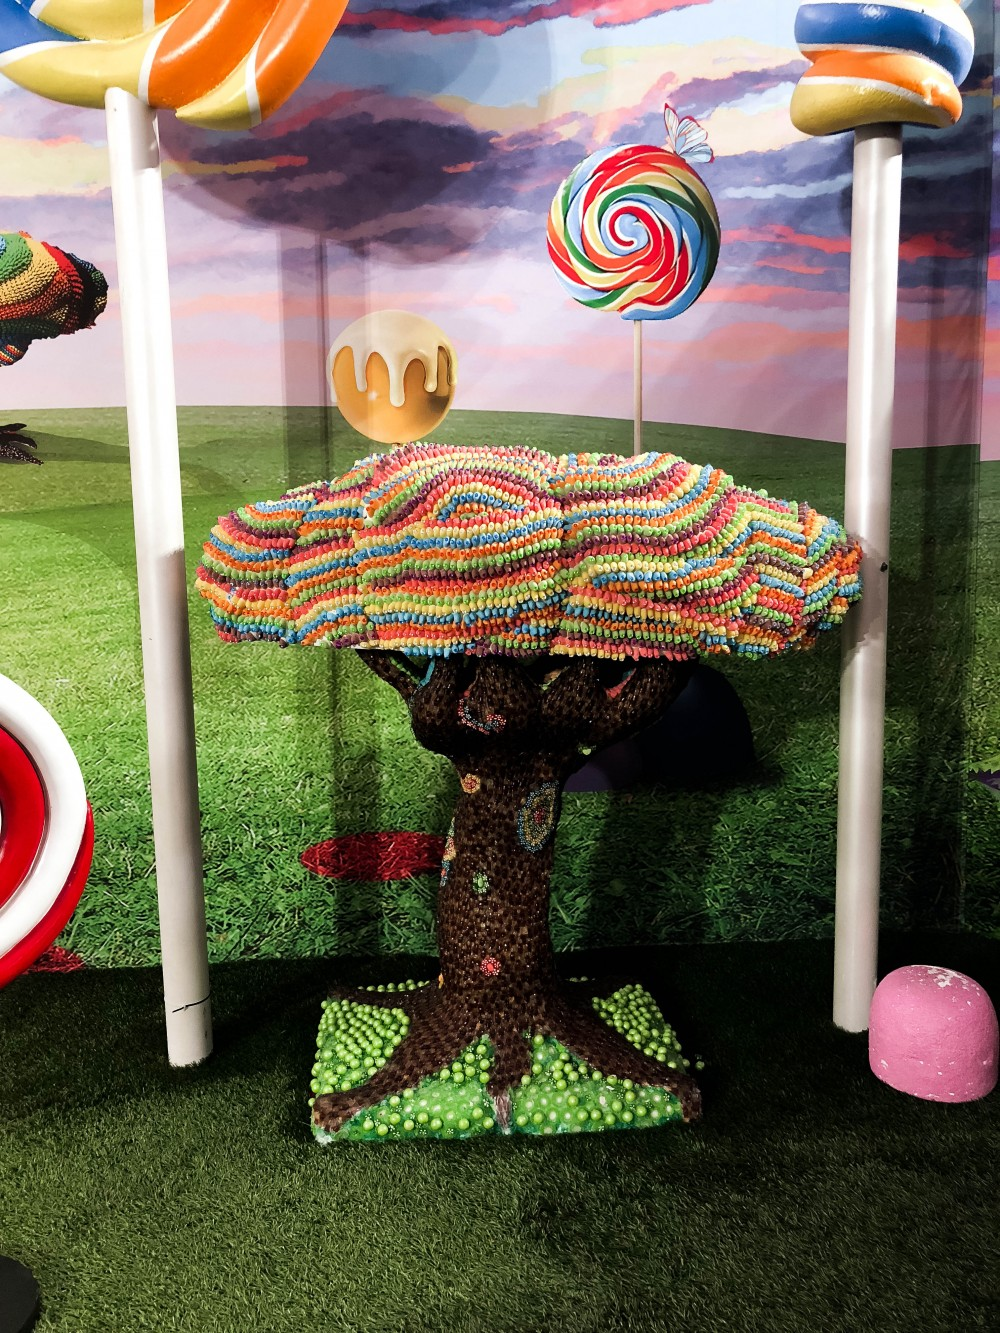 Candytopia, Pop Up Museum, Canytopia NYC, Candytopia Review, Have Need Want